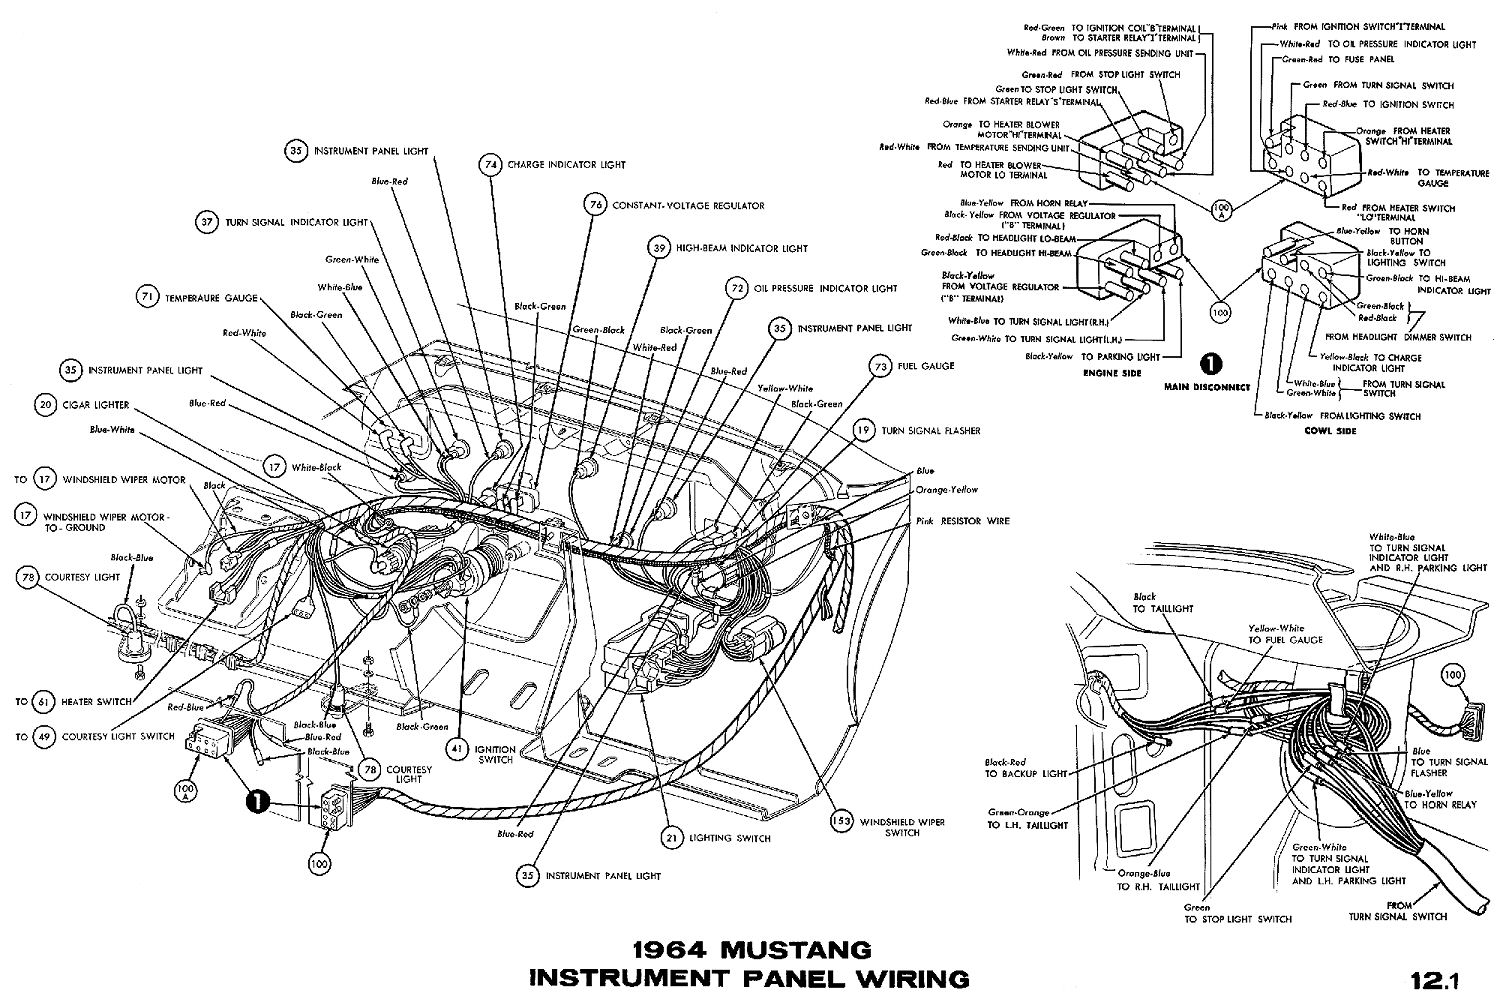 wiring diagram for 1966 ford mustang the wiring diagram 1964 mustang wiring diagrams average joe restoration wiring diagram